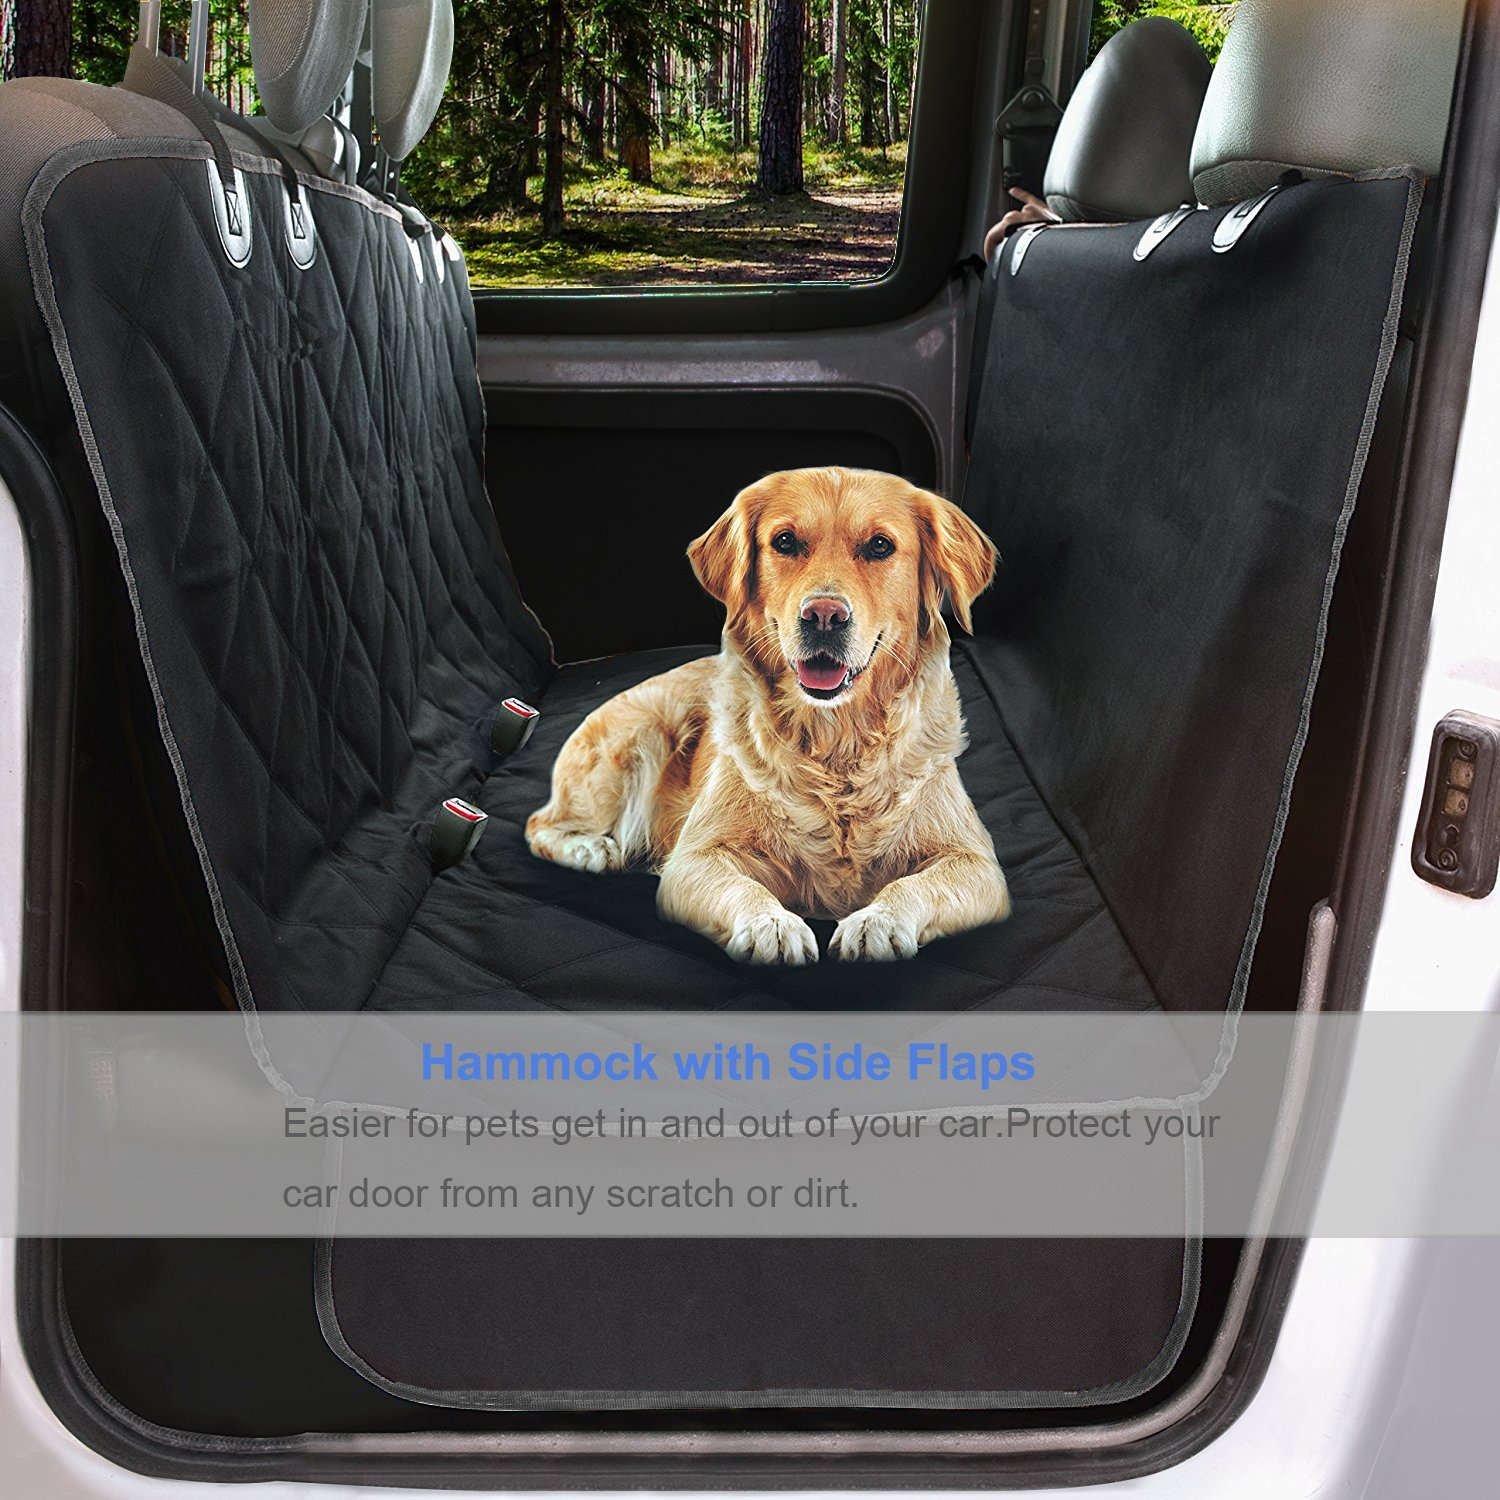 GELOO Bench Car Seat Cover Protector Waterproof, Heavy-Duty and Nonslip Pet Car Seat Cover for Dogs with Universal Size Fits for Cars, Trucks & SUVs by GELOO (Image #2)